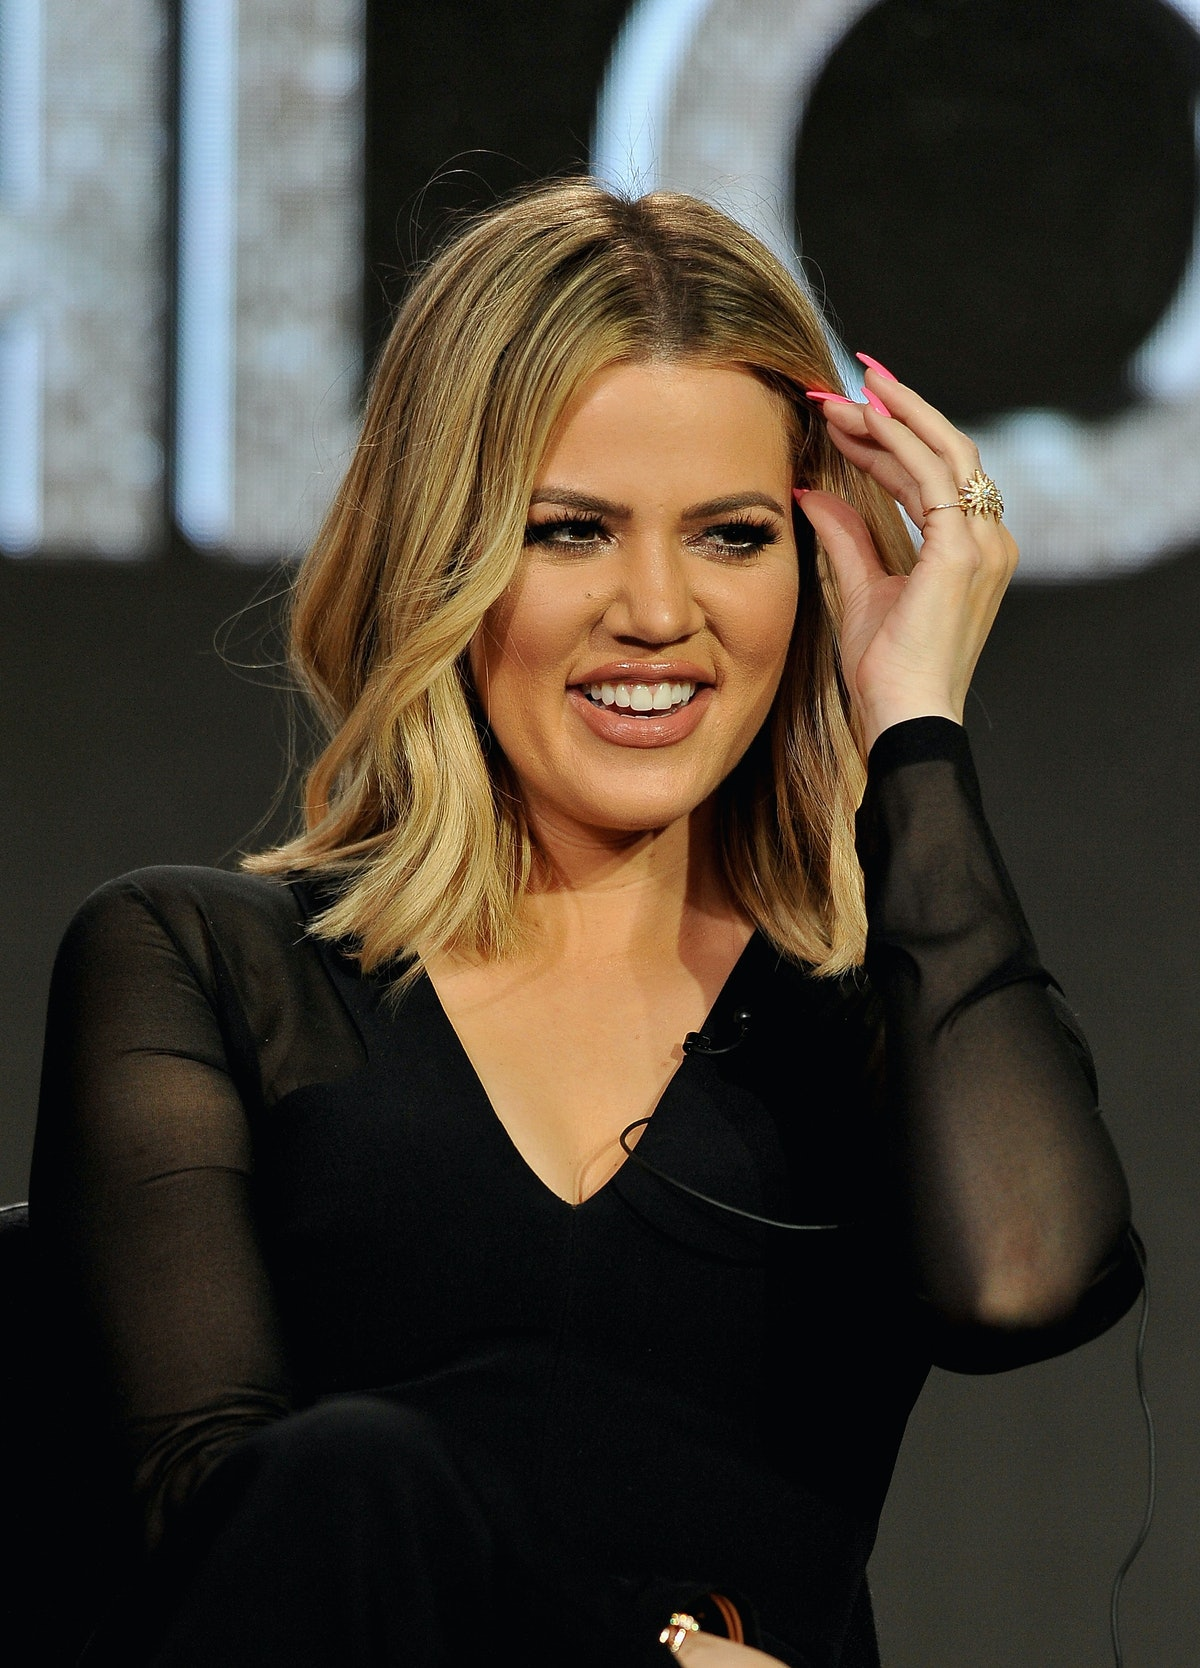 People Are *Convinced* Khloe Kardashian Photoshopped Her Pregnancy Out Of This Pic